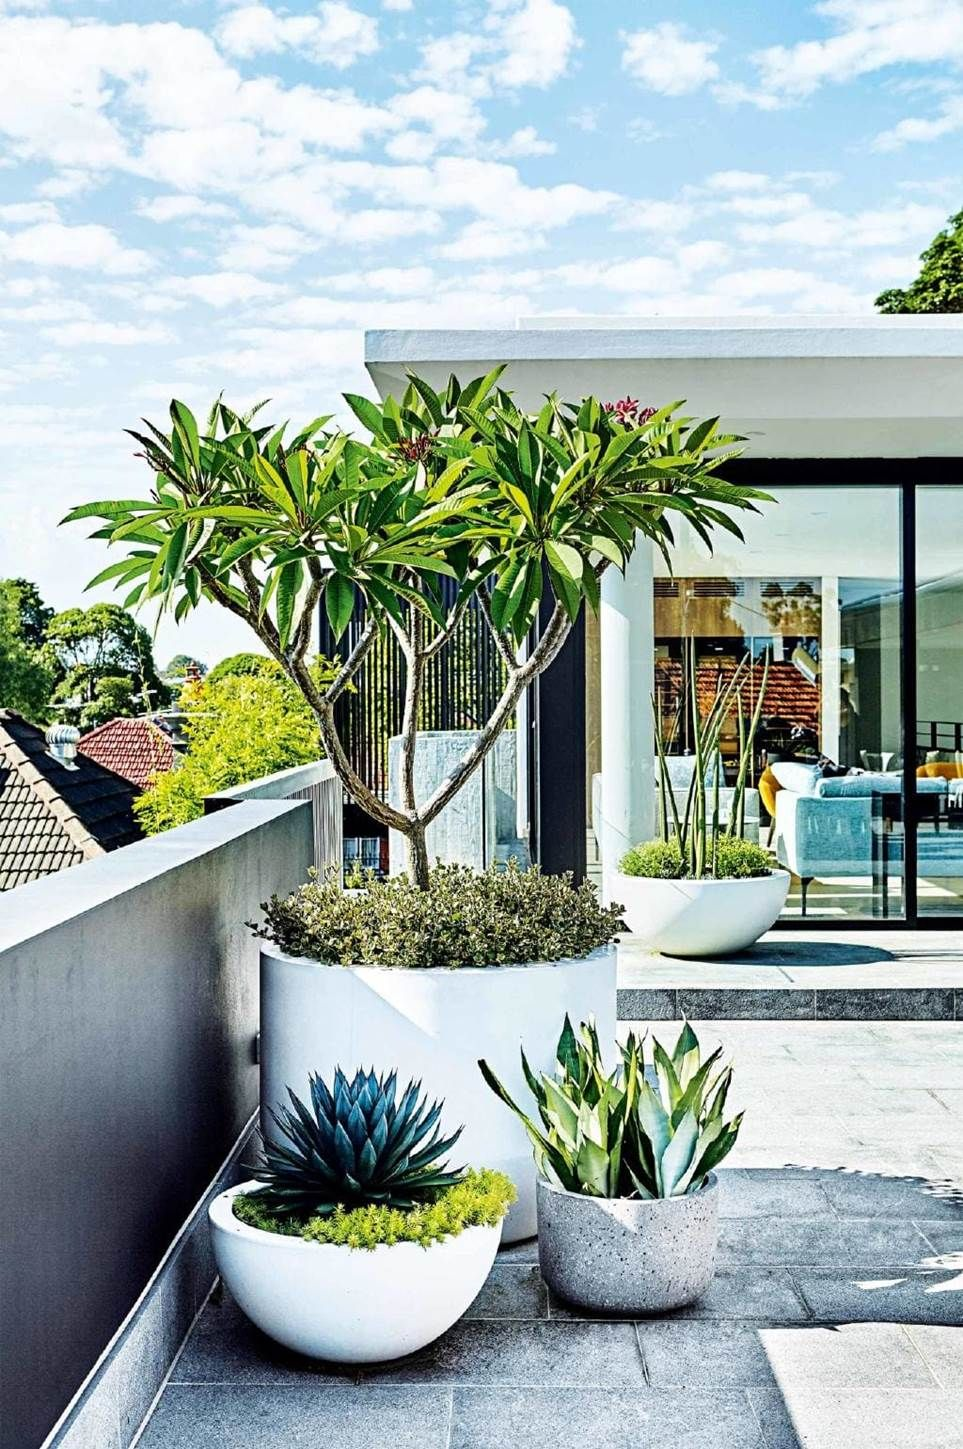 This Rooftop Terrace Features A Low Maintenance Garden With